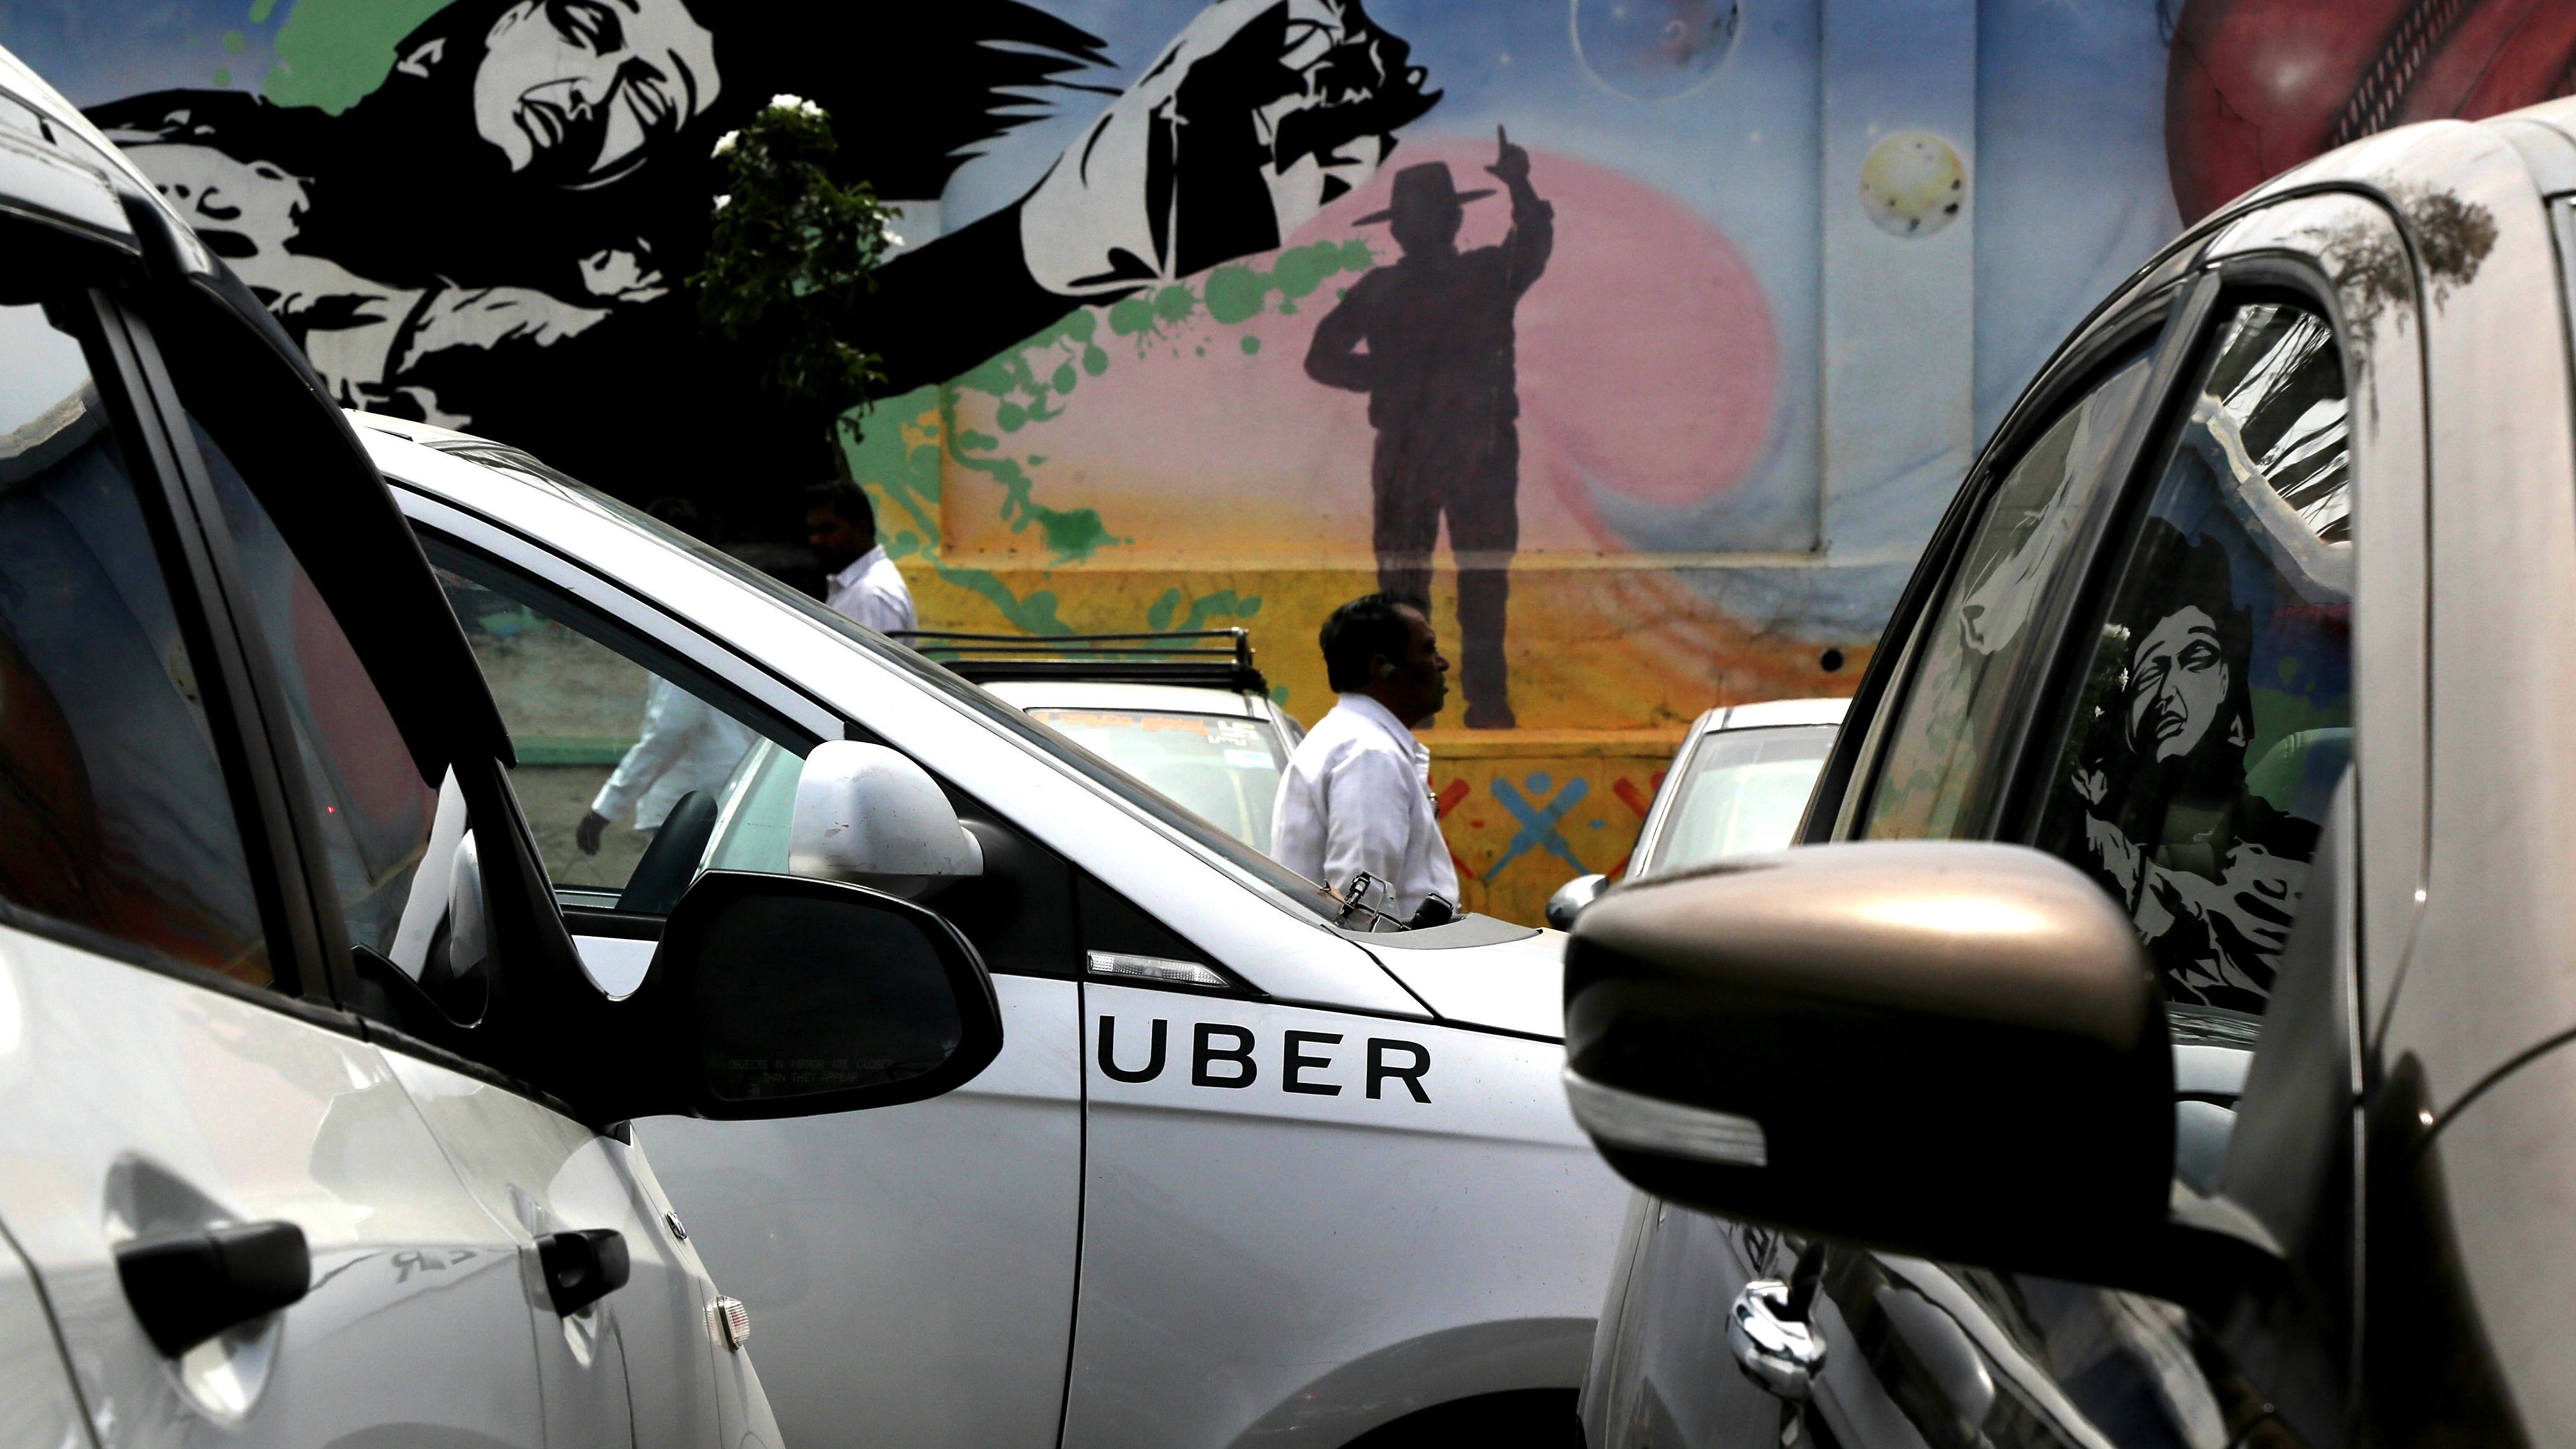 epa05822288 Ola and Uber cabs are parked during a strike against the mobile app based taxi booking services Ola Cabs and Uber in Bangalore, India, 01 March 2017. Hundreds of Ola and Uber cab drivers started an indefinite strike in Bangalore on 22 February demanding better incentives.  EPA/JAGADEESH NV